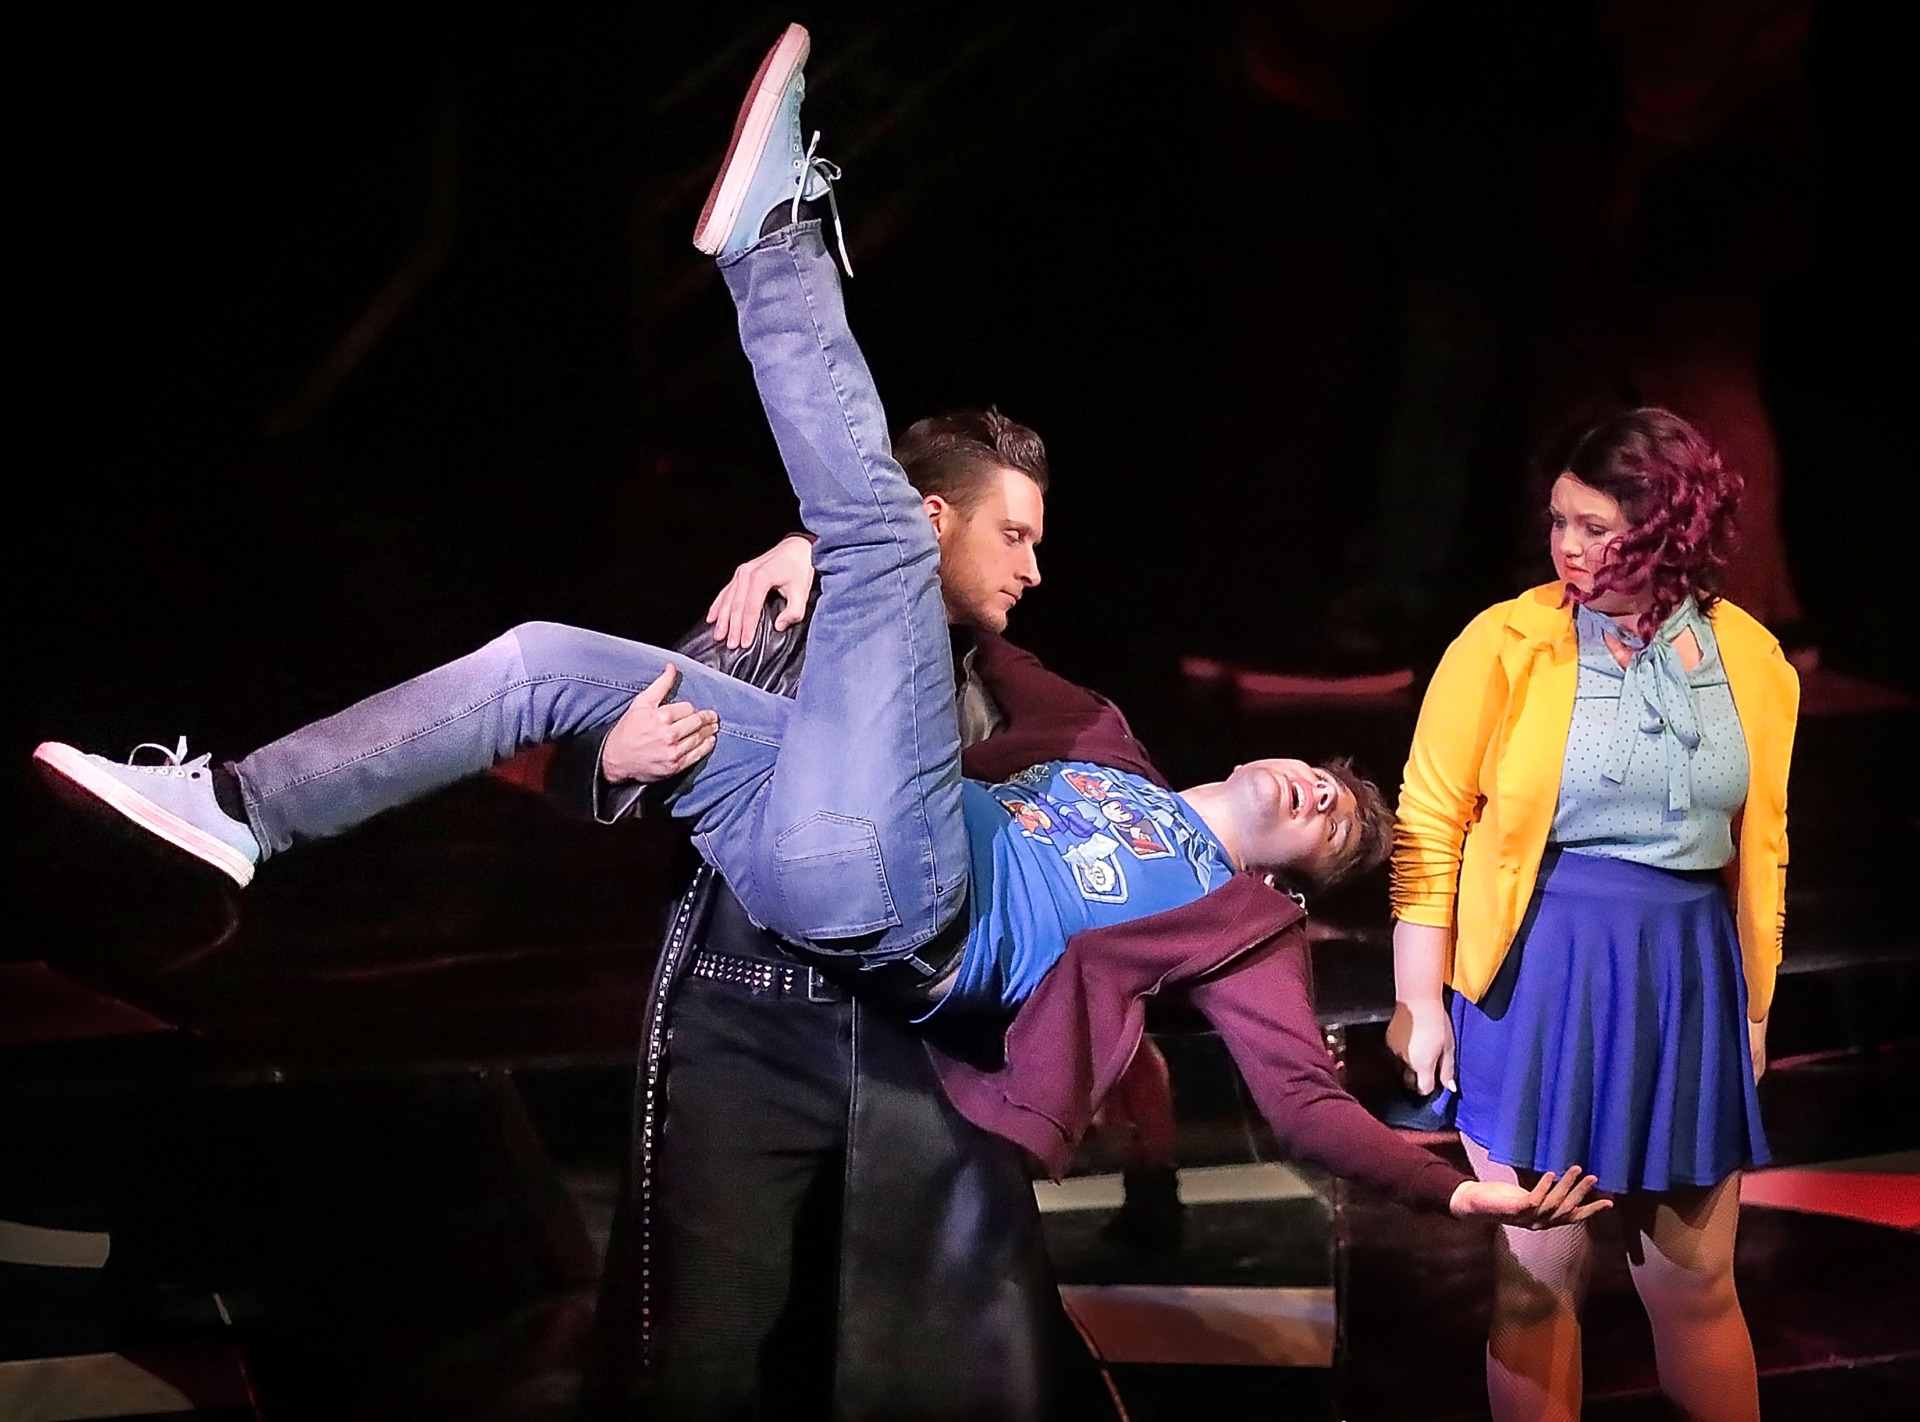 """<strong>Toby Davis (center), playing Jeremy, makes a desperate bid for popularity with the help of Landon Ricker (left) during a performance of the musical """"Be More Chill"""" by the University of Memphis Department of Theatre and Dance on Feb. 15, 2019, for area high school students. The musical premiered on Broadway on Feb. 13.&nbsp;</strong>&nbsp;(Jim Weber/Daily Memphian)"""